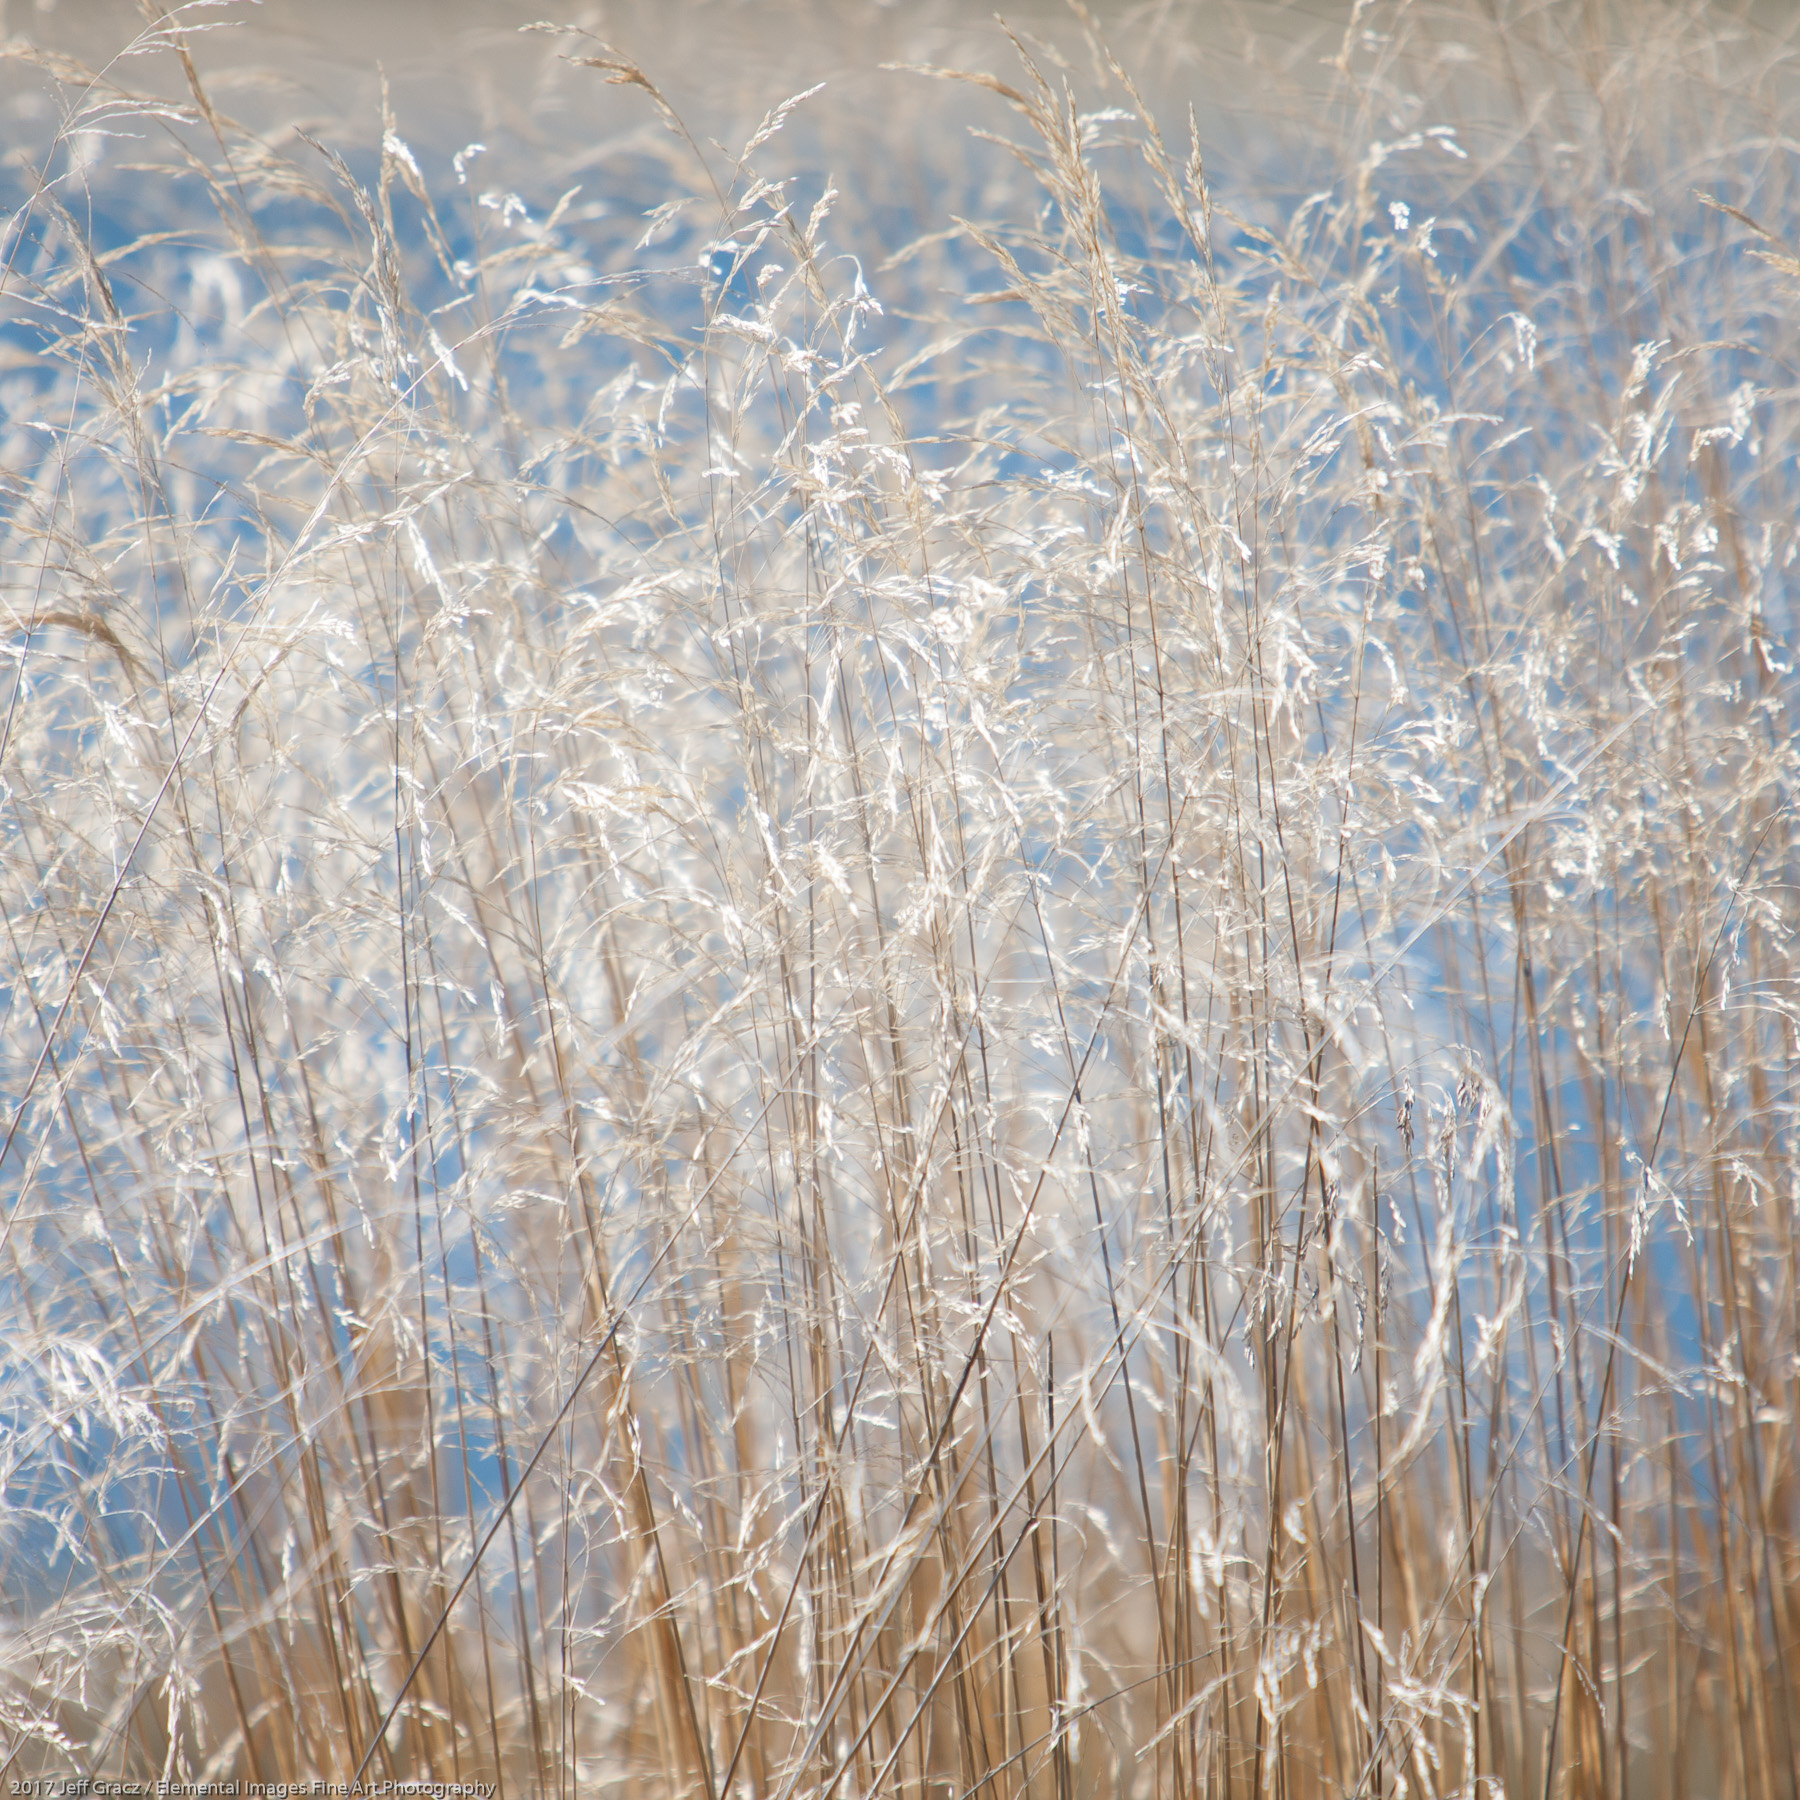 Grasses #164 | Three Rocks | OR | USA - © 2017 Jeff Gracz / Elemental Images Fine Art Photography - All Rights Reserved Worldwide